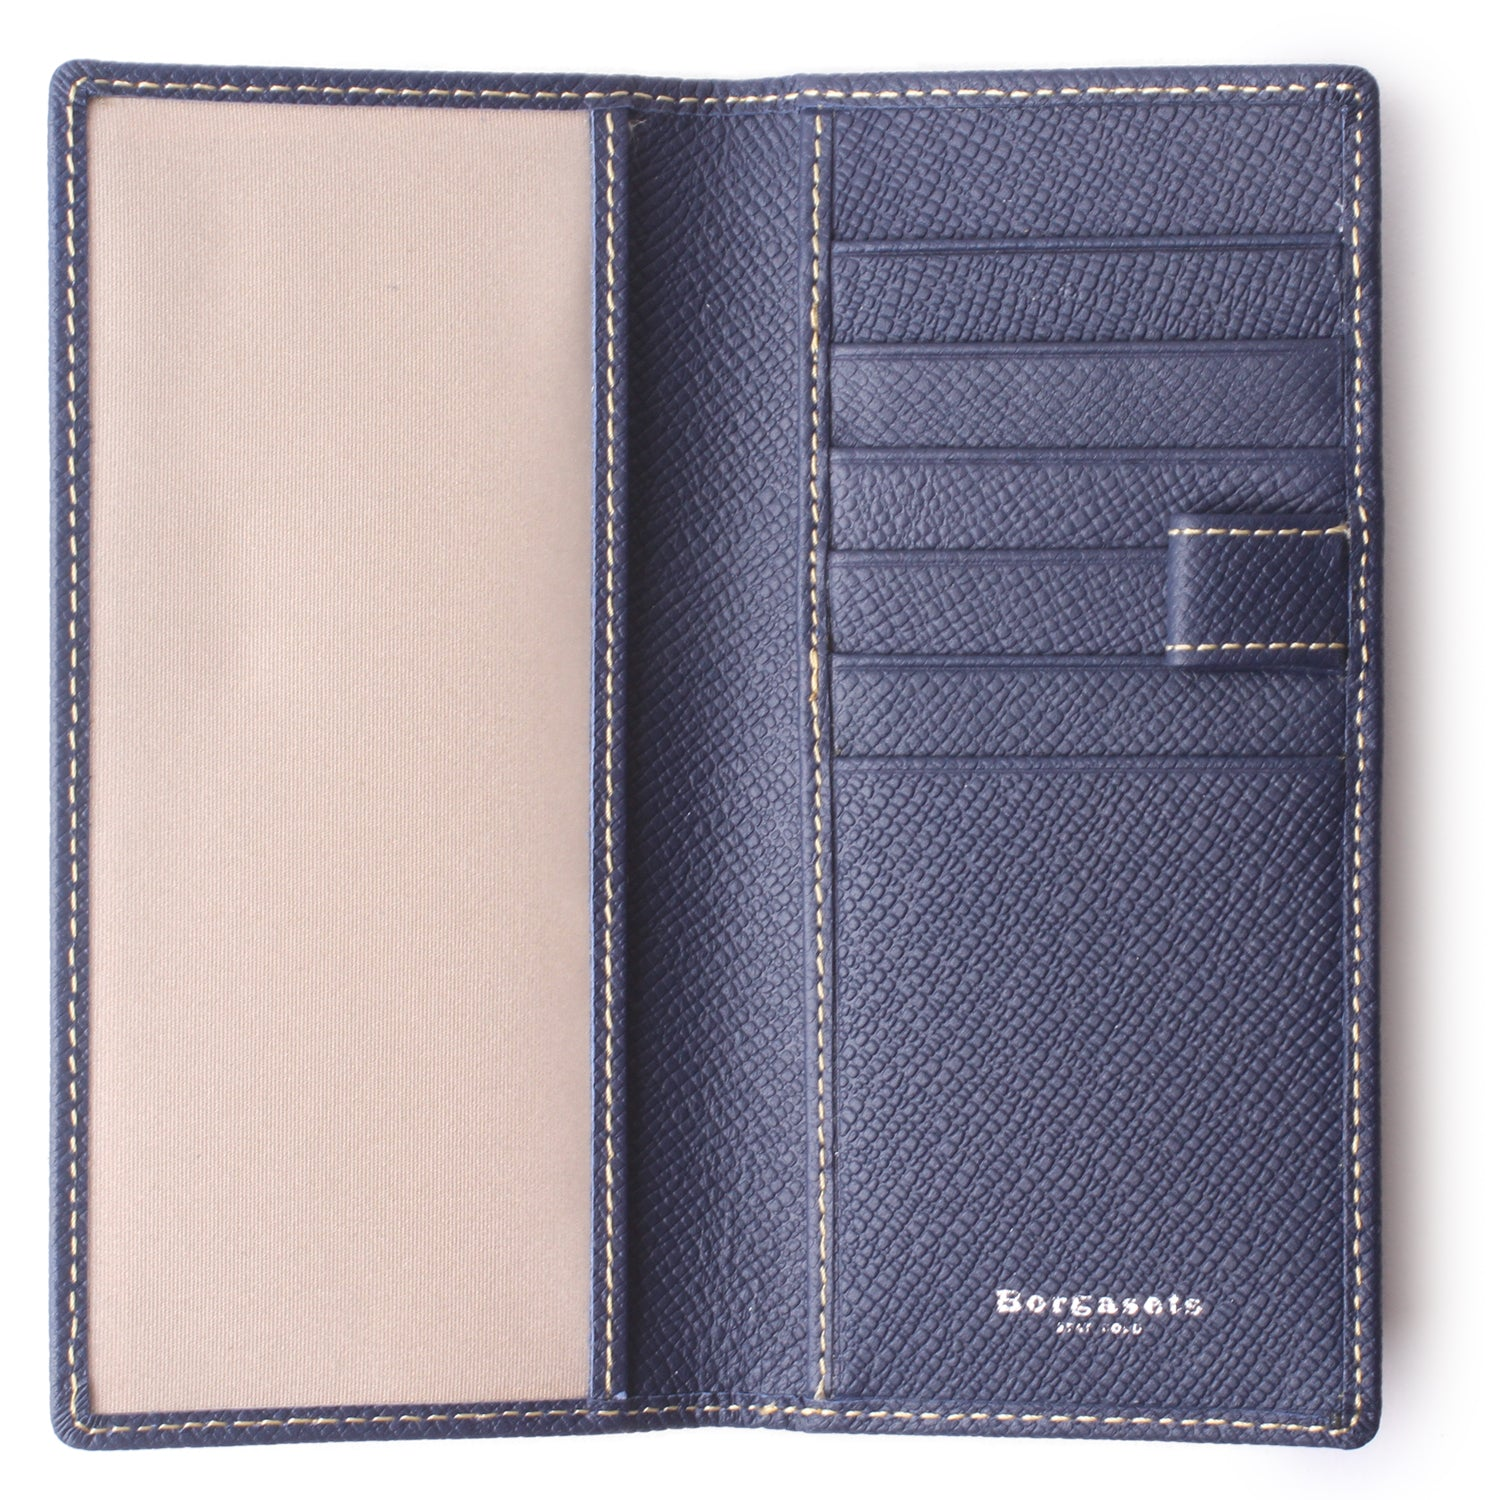 Leather Checkbook Cover For Men Women Checkbook Covers with Card Holder Wallet Blue - Borgasets